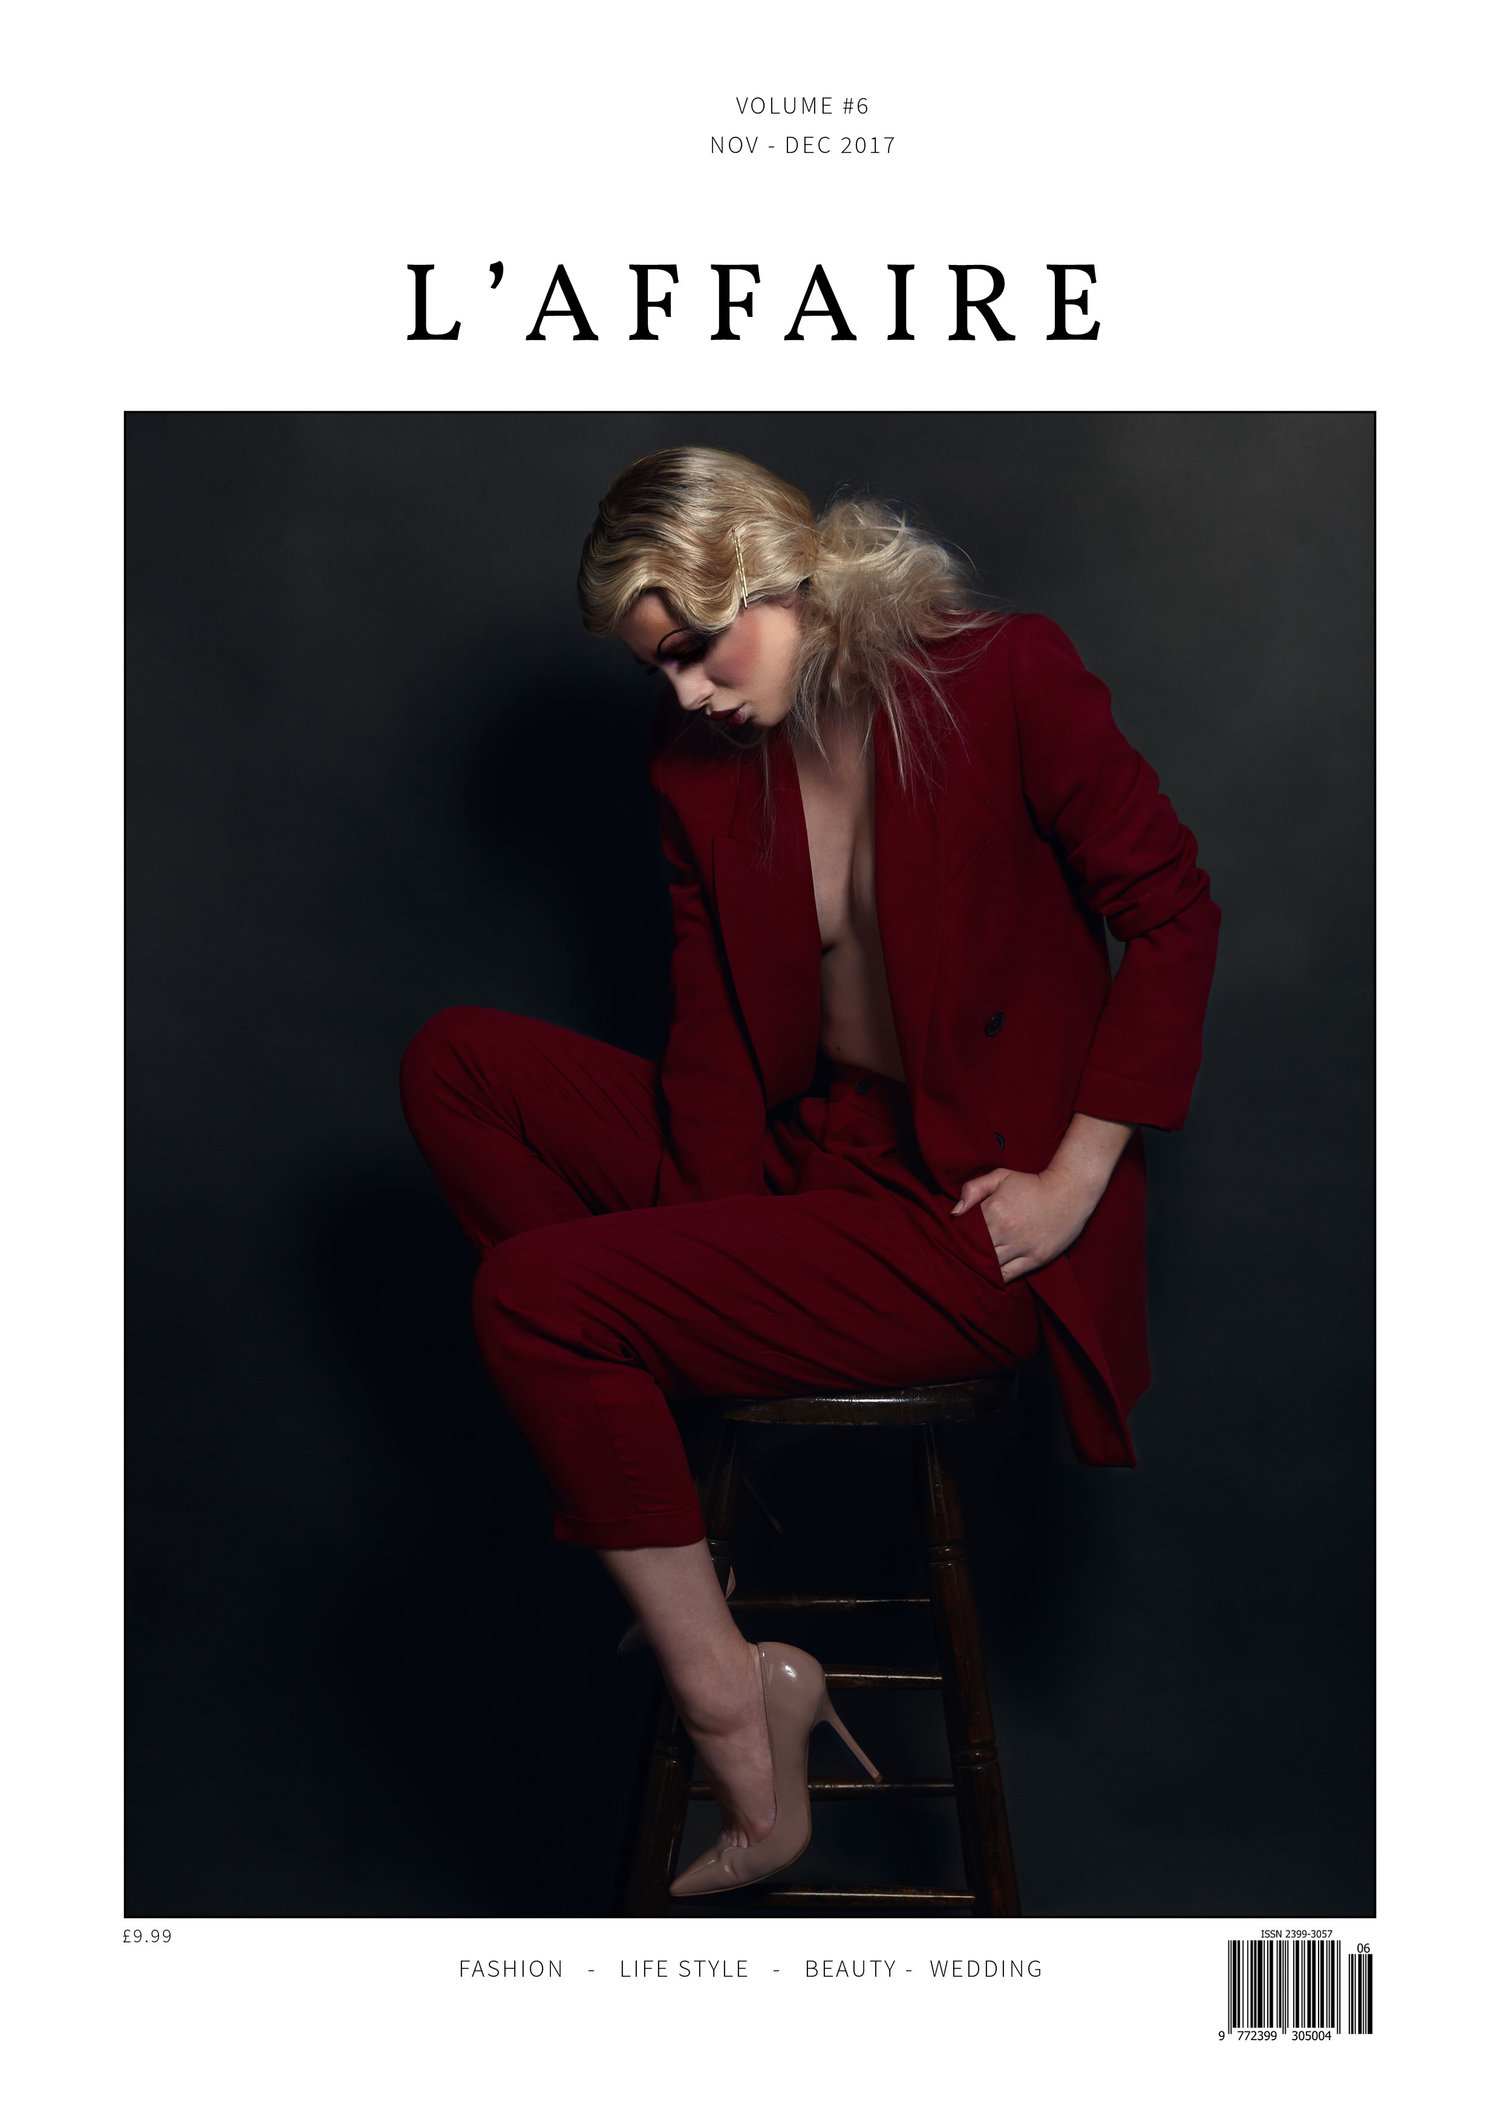 L'AFFAIRE MAGAZINE